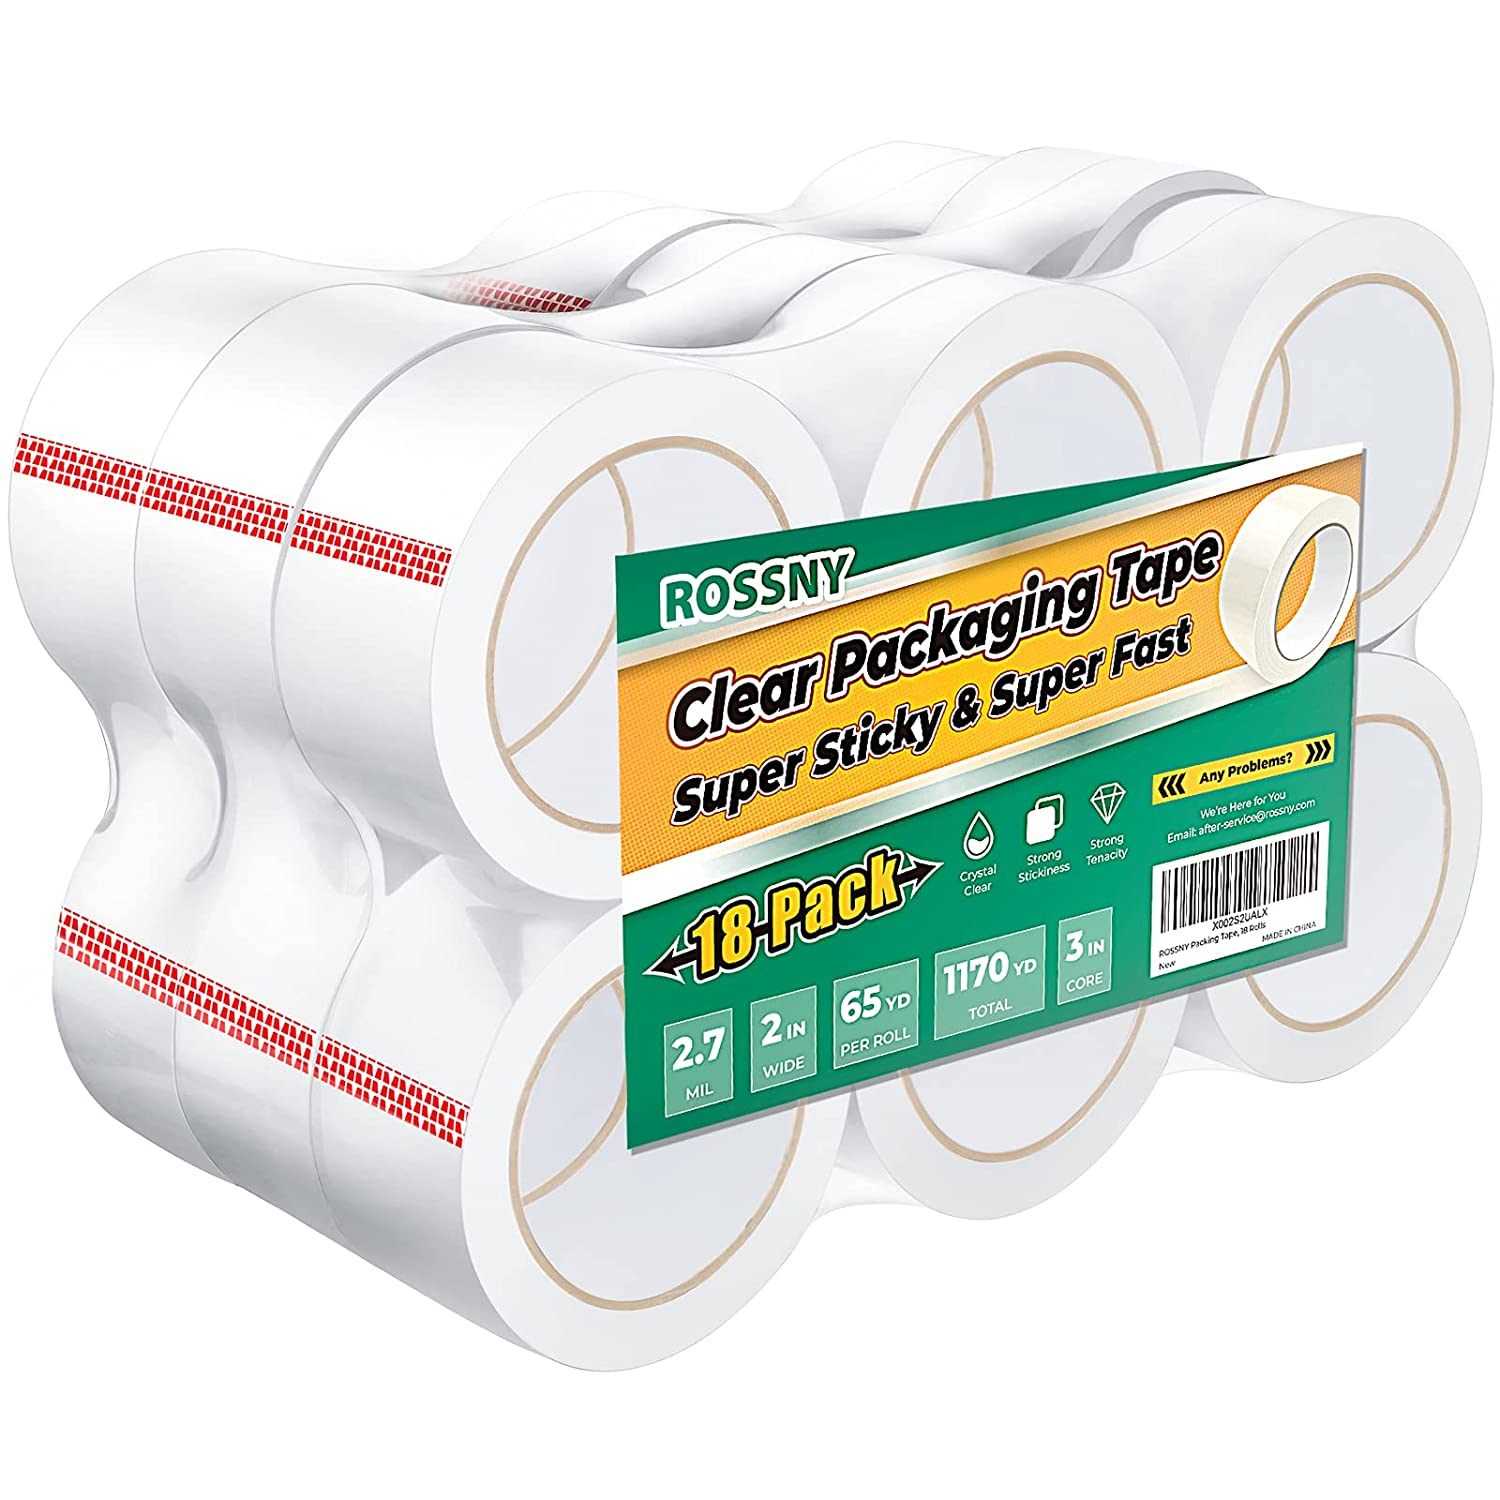 Clear Packing Tape ROSSNY 18 Heavy Shipping 2. Duty Rolls Fresno Weekly update Mall